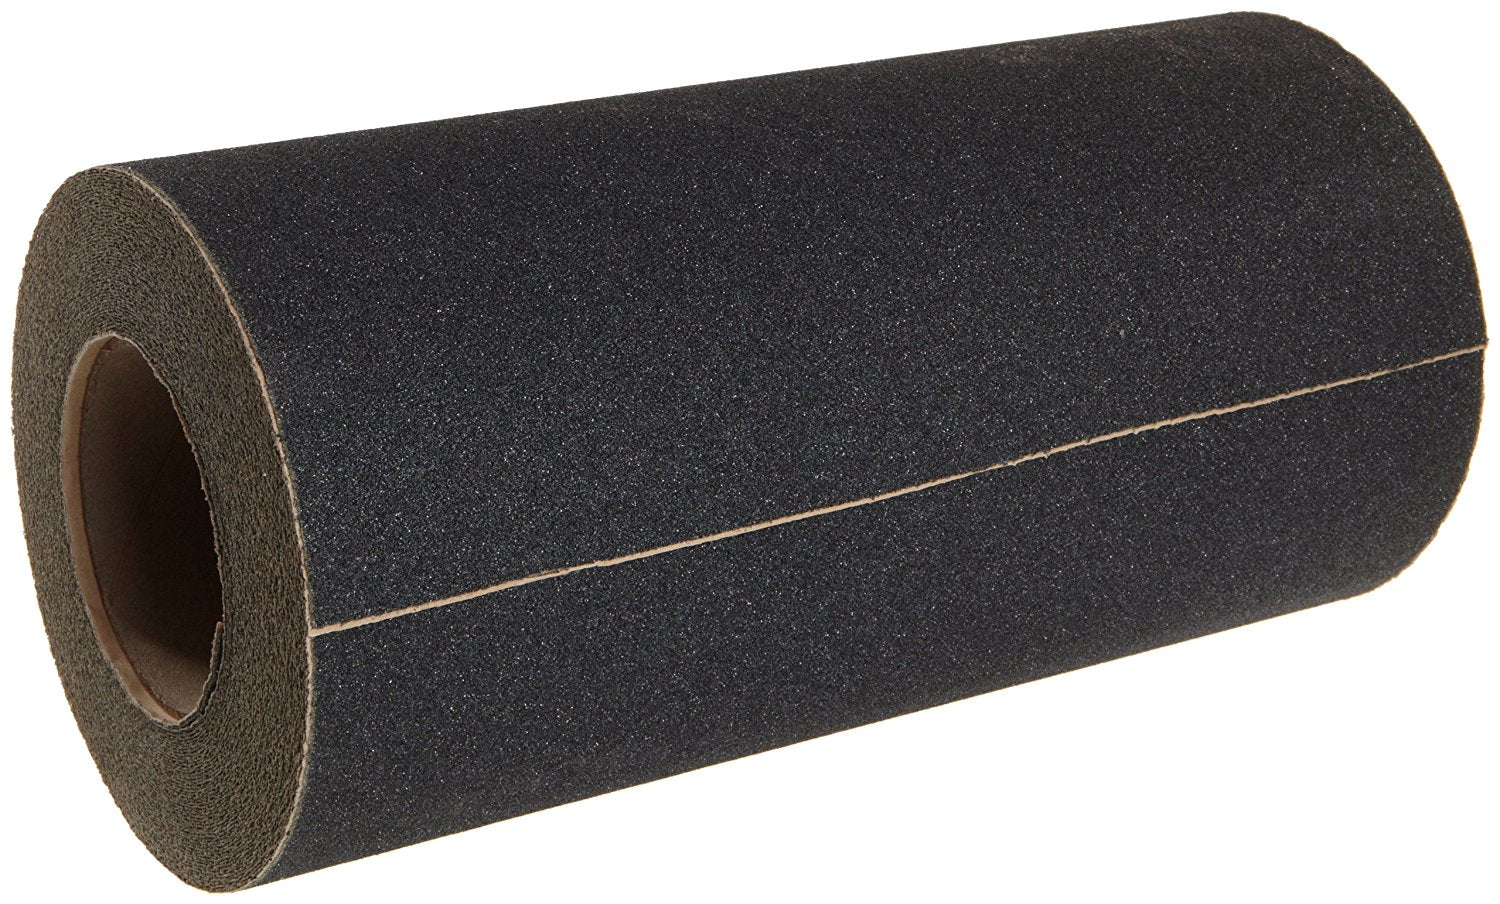 "12"" X 10' Roll BLACK Abrasive Tape"